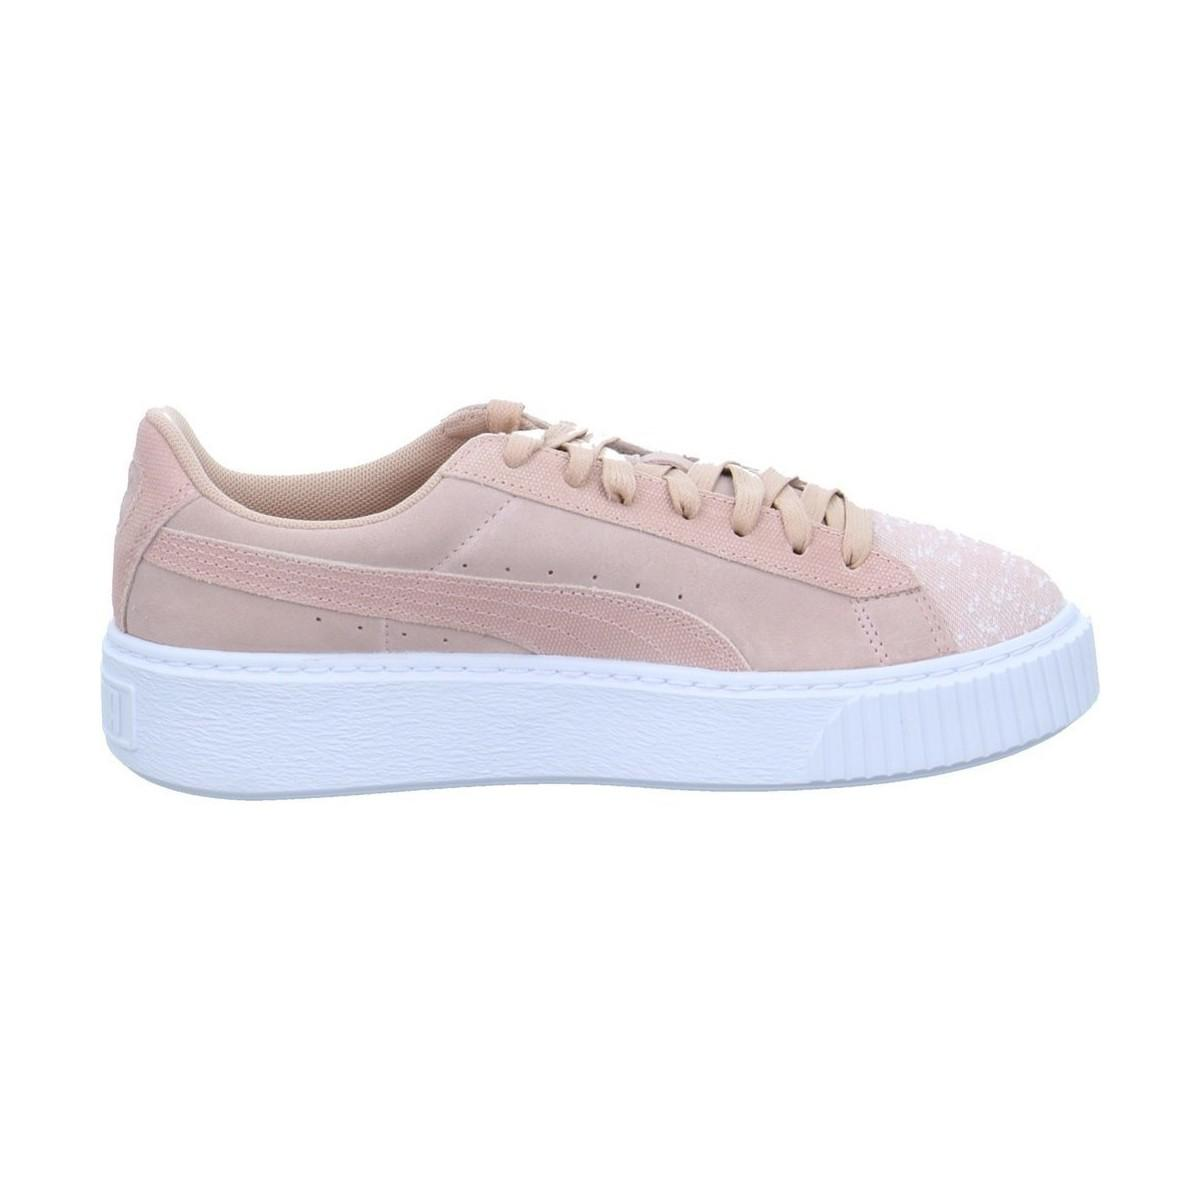 new style 4af85 47cf4 PUMA Suede Platform Pebble Women's In Multicolour - Lyst